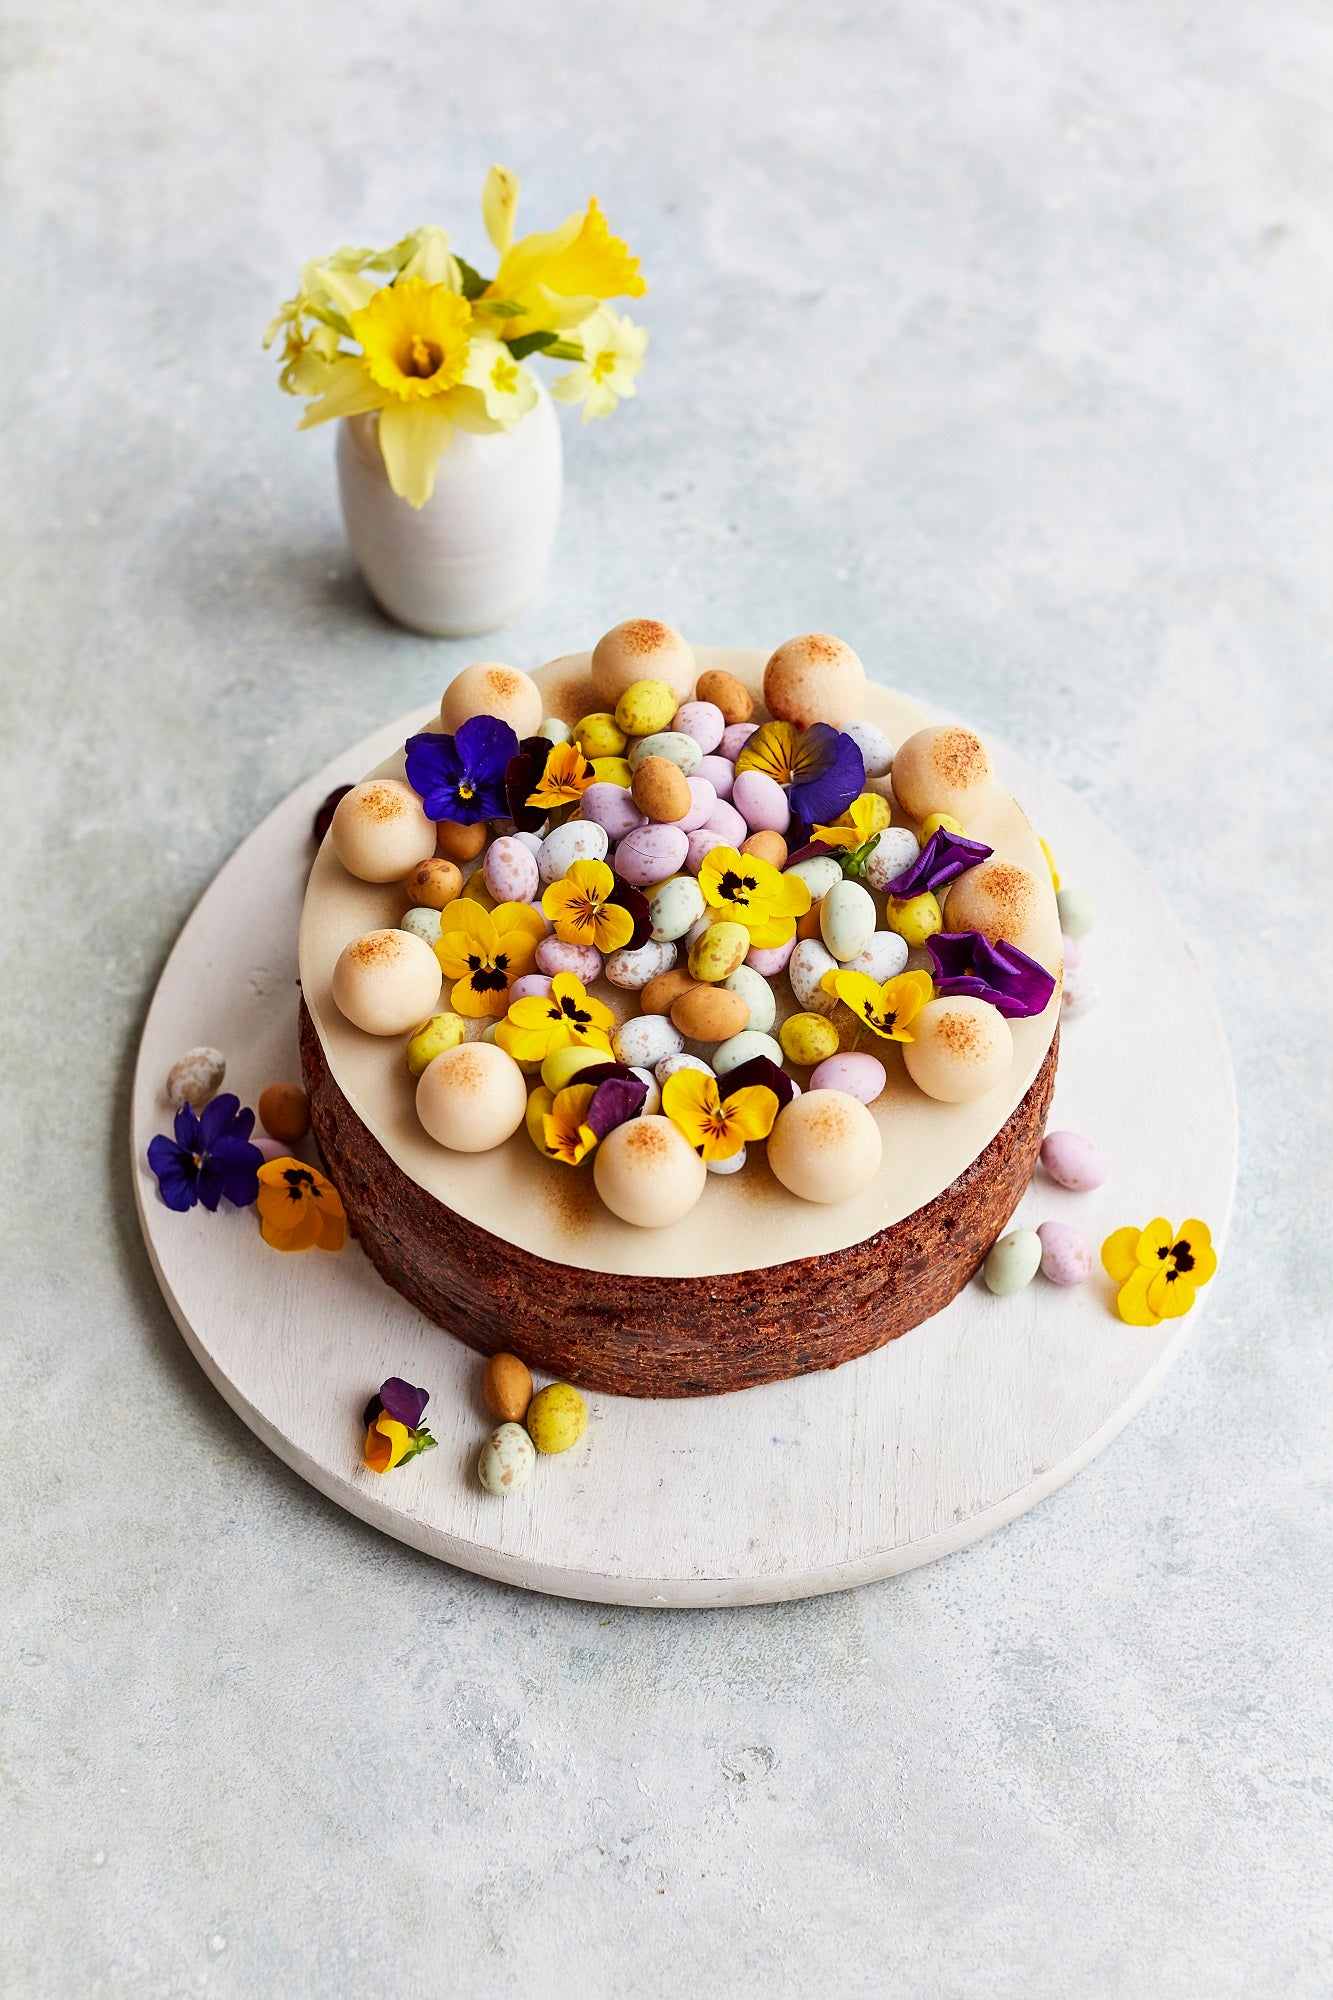 Earl Grey and Ginger Simnel Cake Recipe - Spring and Easter cake recipe